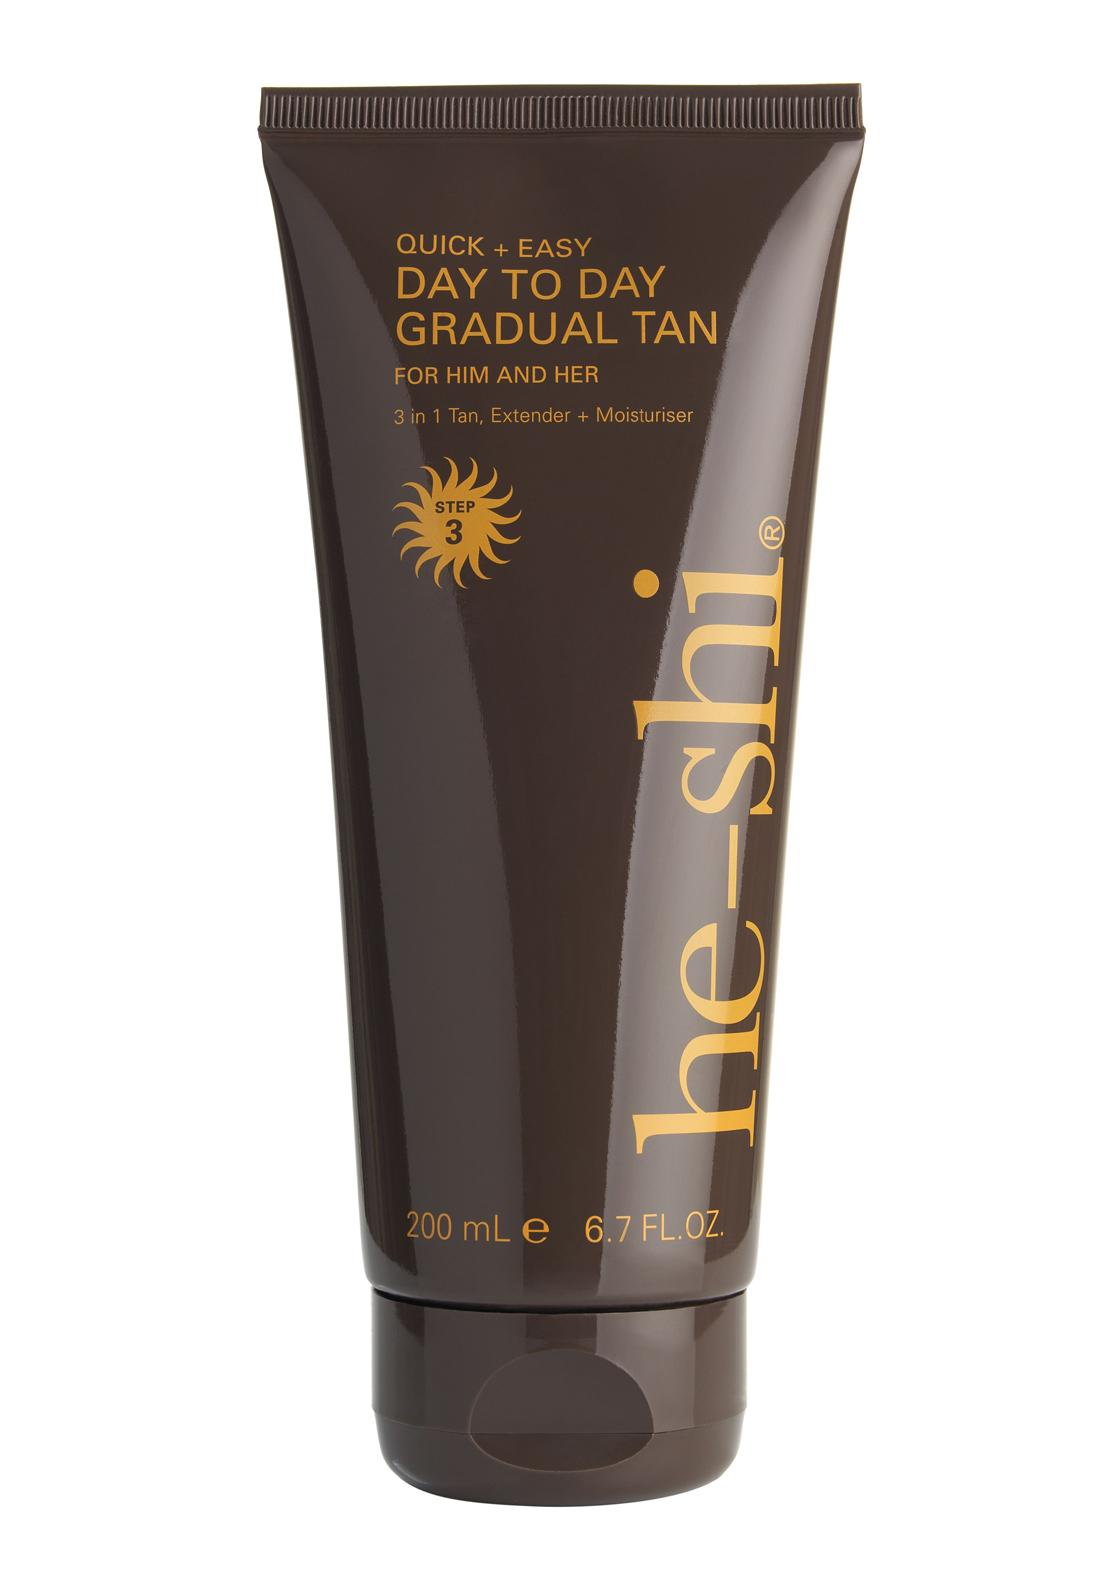 He-Shi Day to Day Gradual Tan